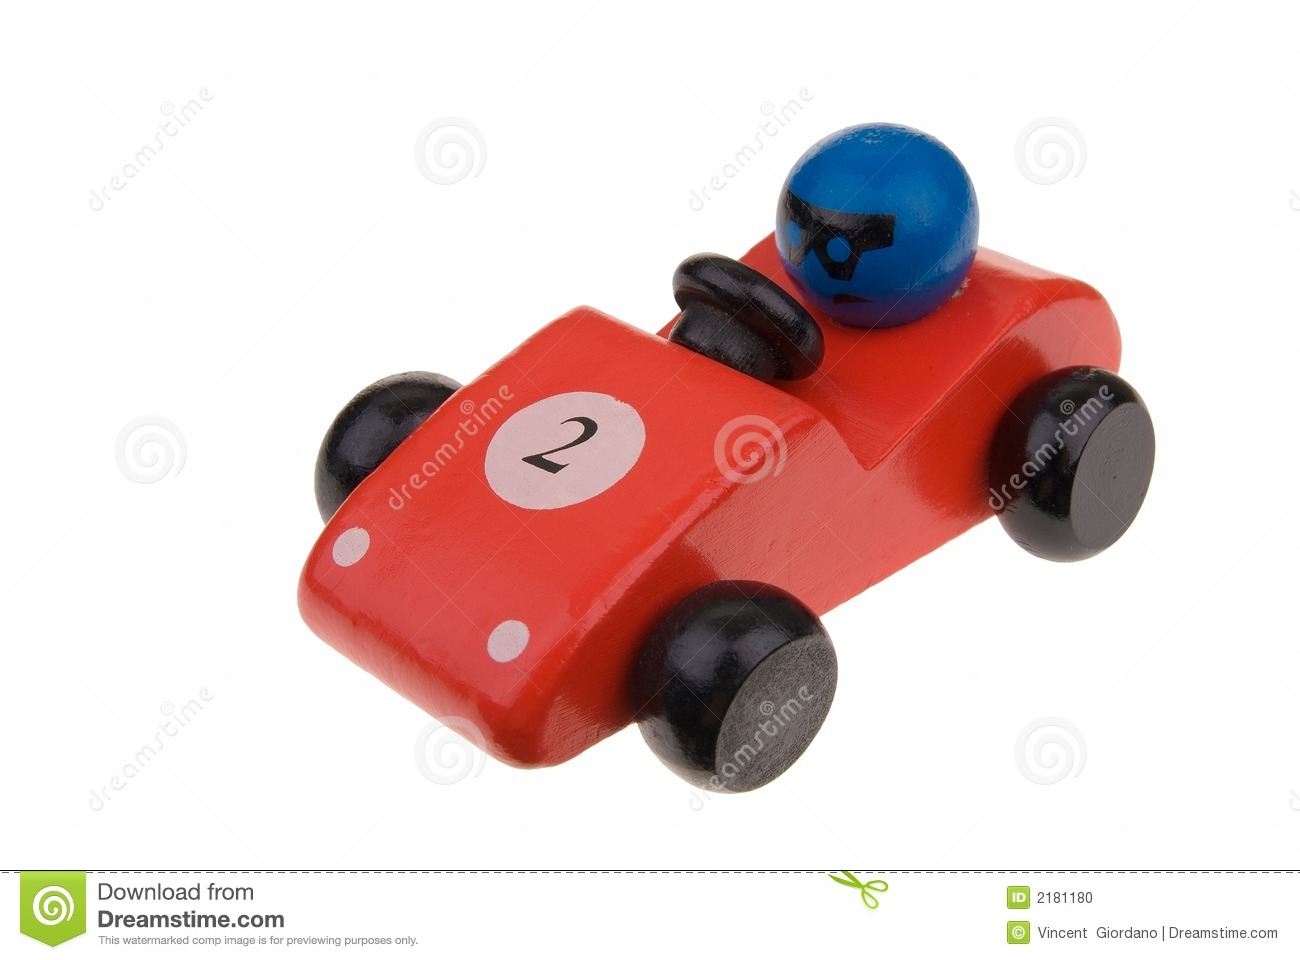 Toy Race Cars : Red wooden toy race car stock photo image of icon baby